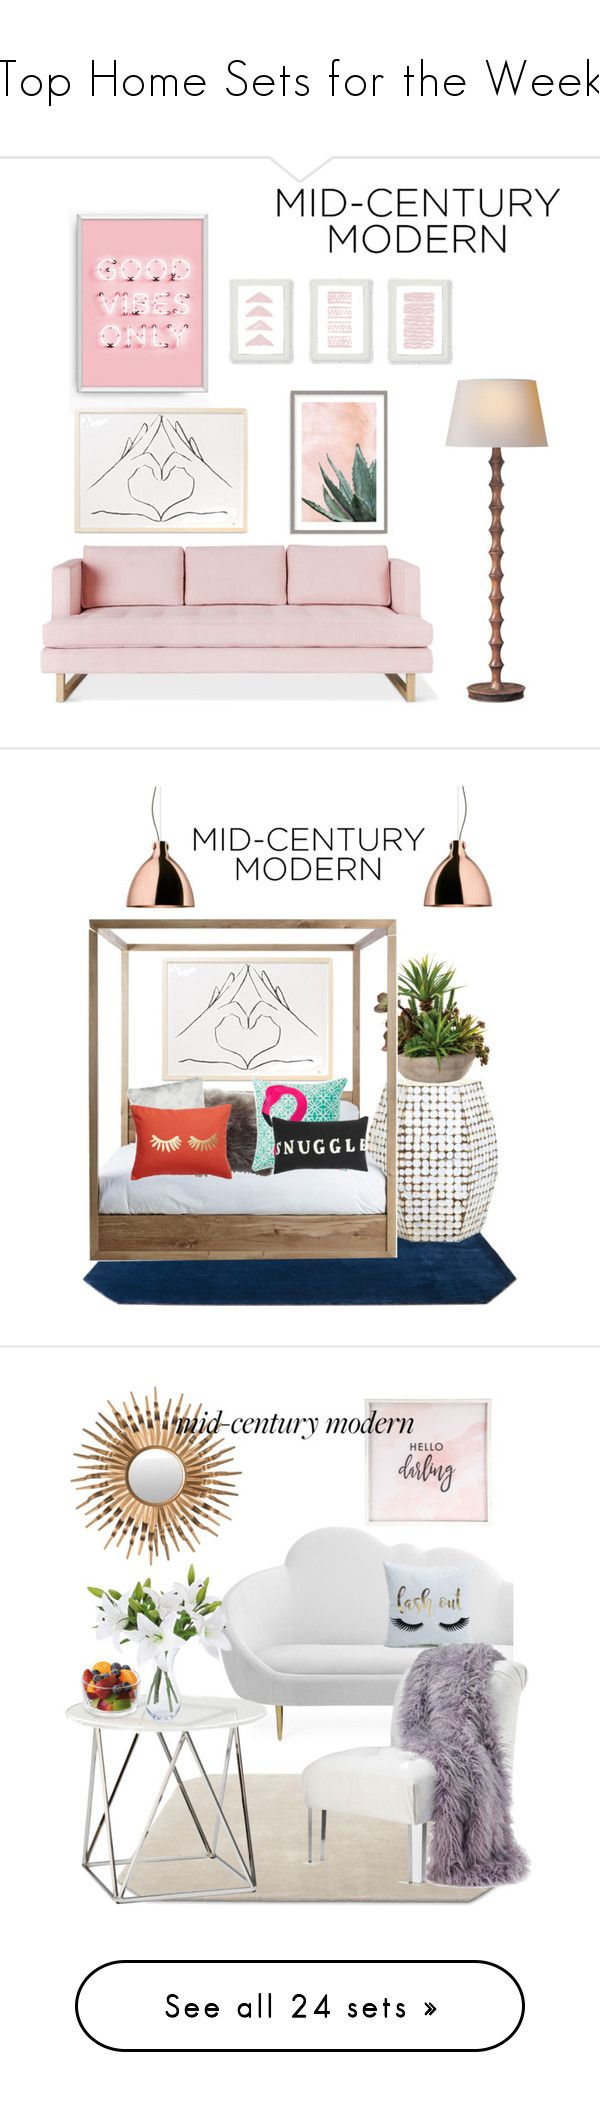 """""""Top Home Sets for the Week"""" by polyvore ❤ liked on Polyvore featuring interior, interiors, interior design, home, home decor, interior decorating, Gus* Modern, Art Addiction, modern and &Tradition"""